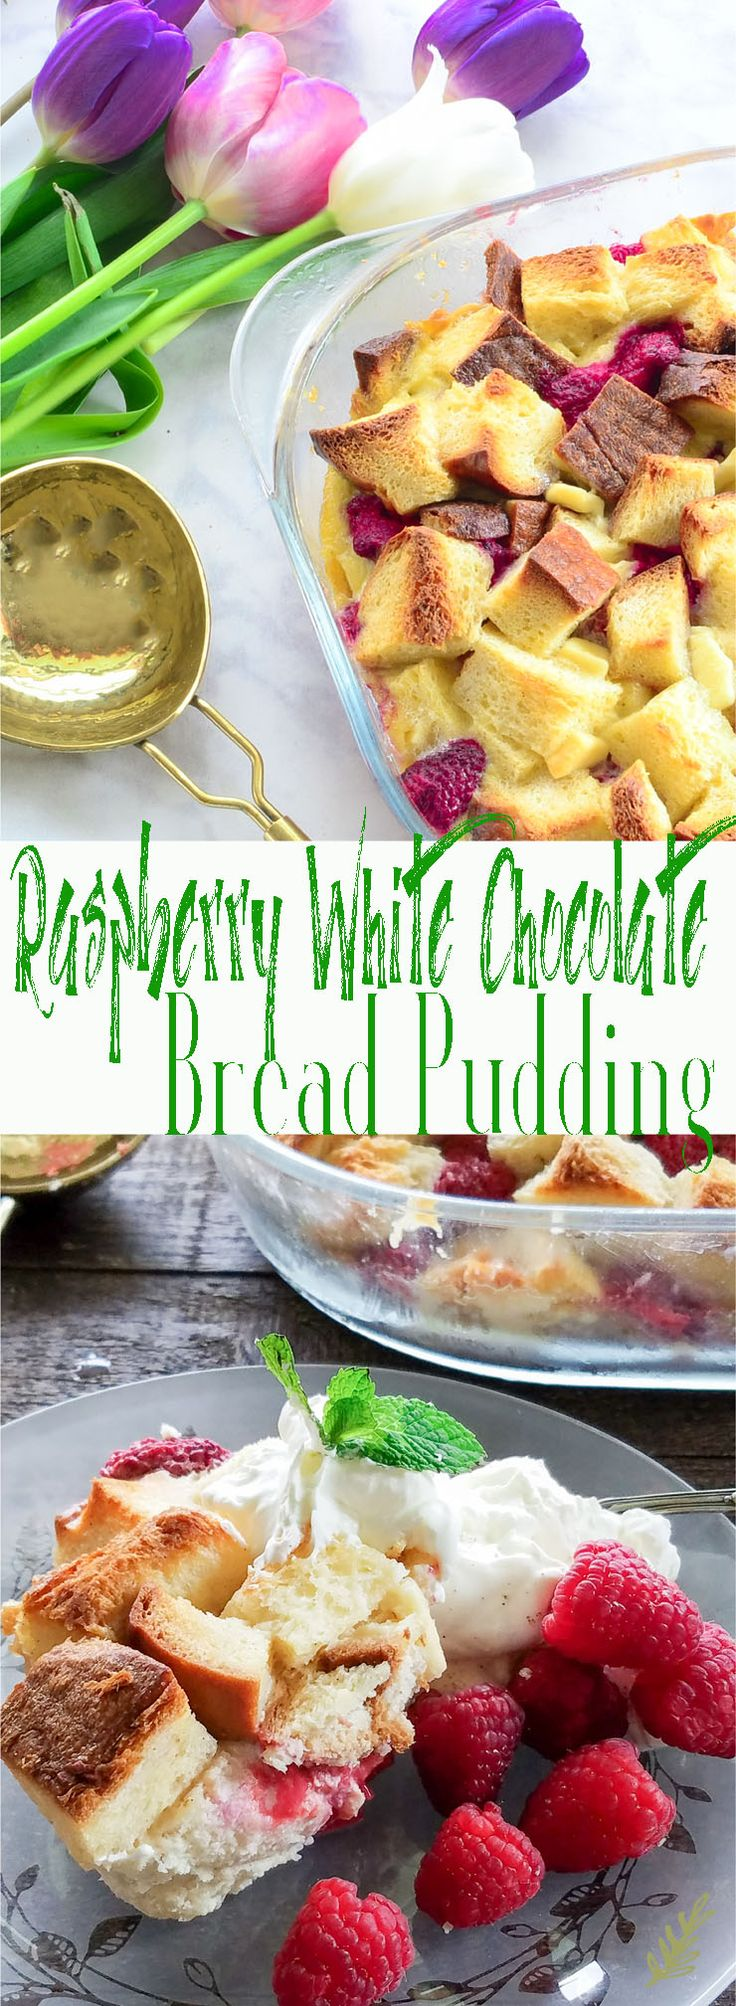 Best 25+ White chocolate bread pudding ideas on Pinterest ...